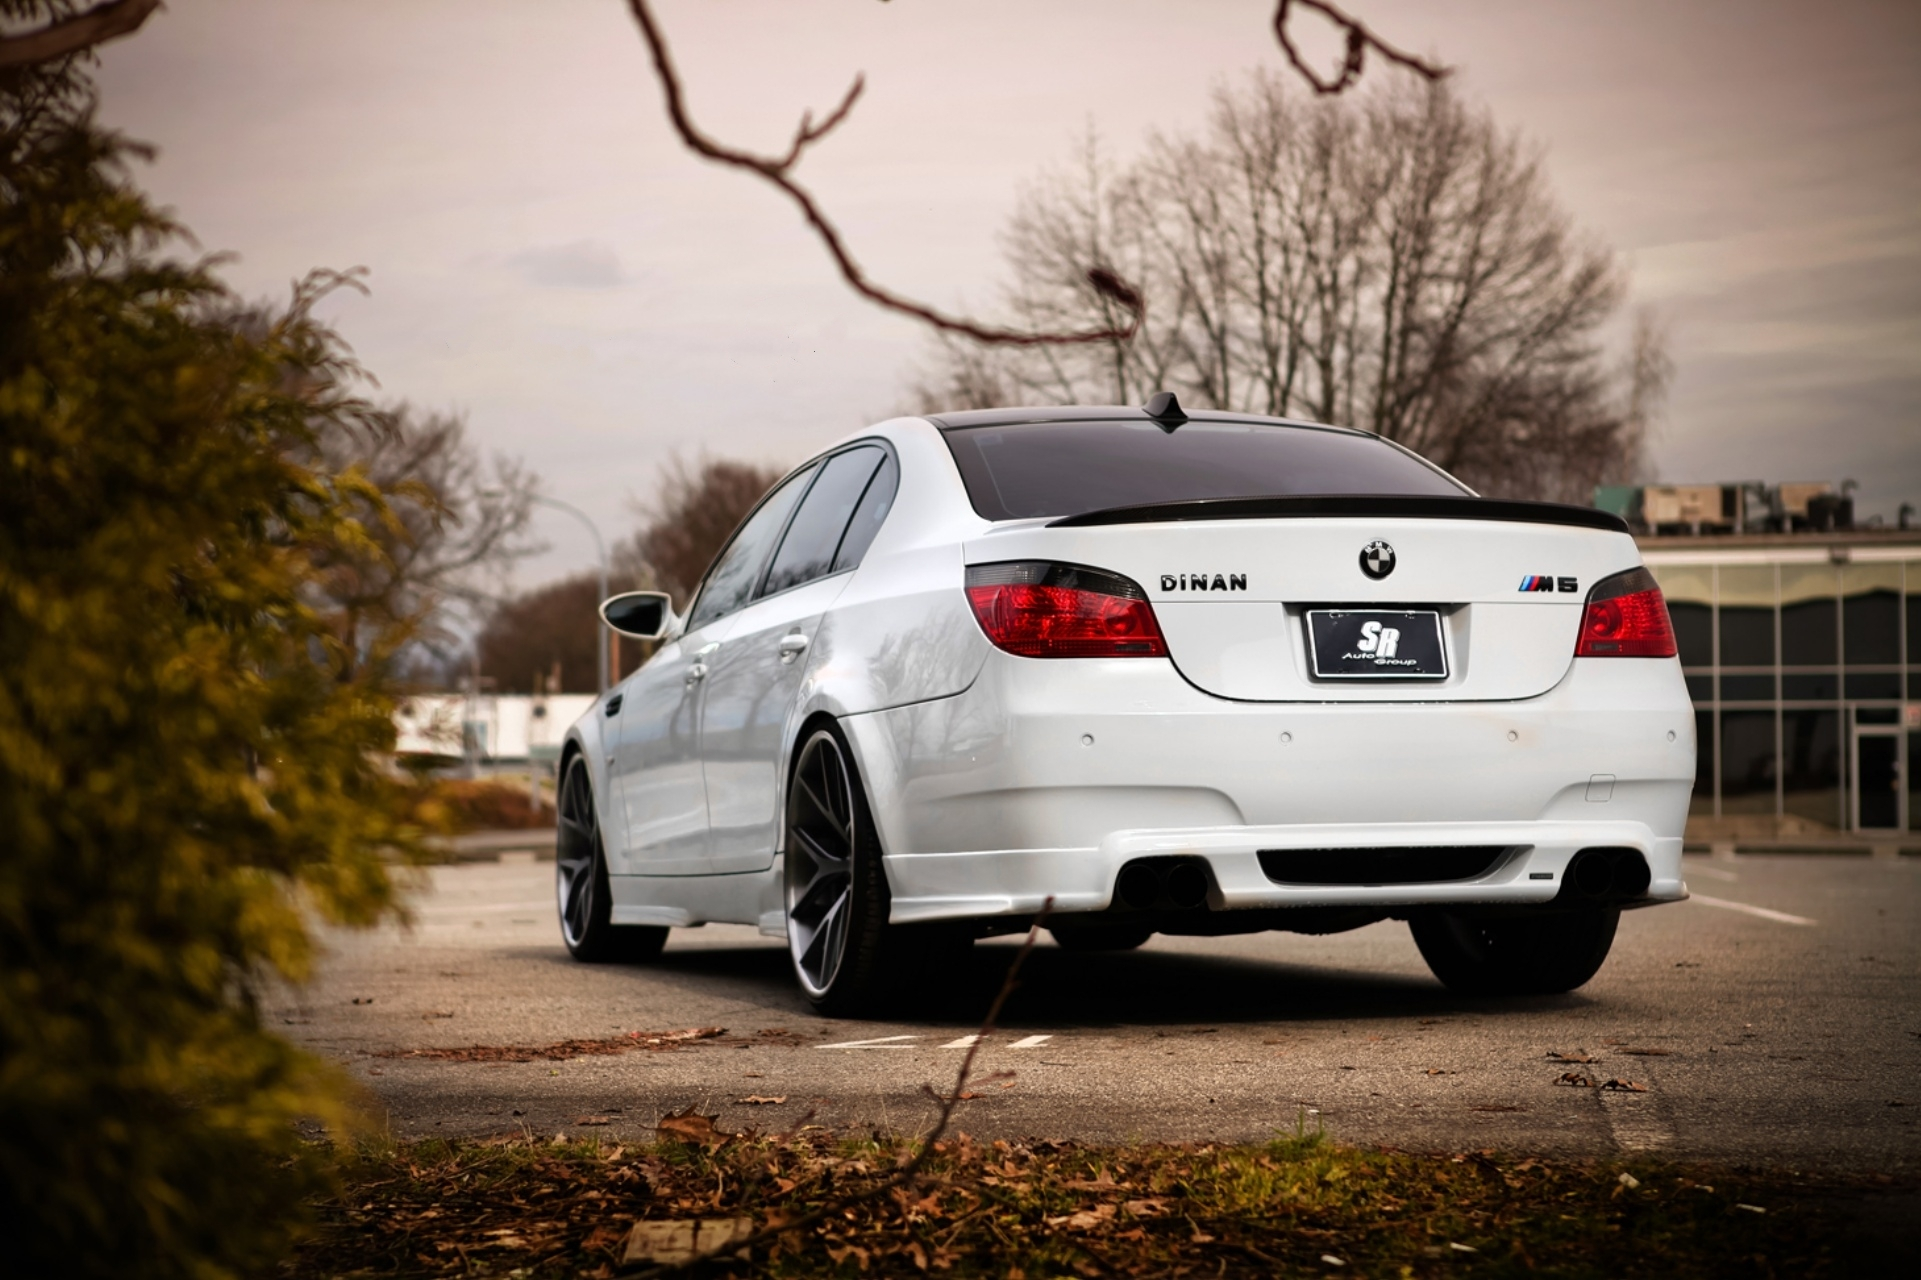 Hd Wallpaper Of Bmw M5 E60 Picture Of White Bmw Imagebank Biz